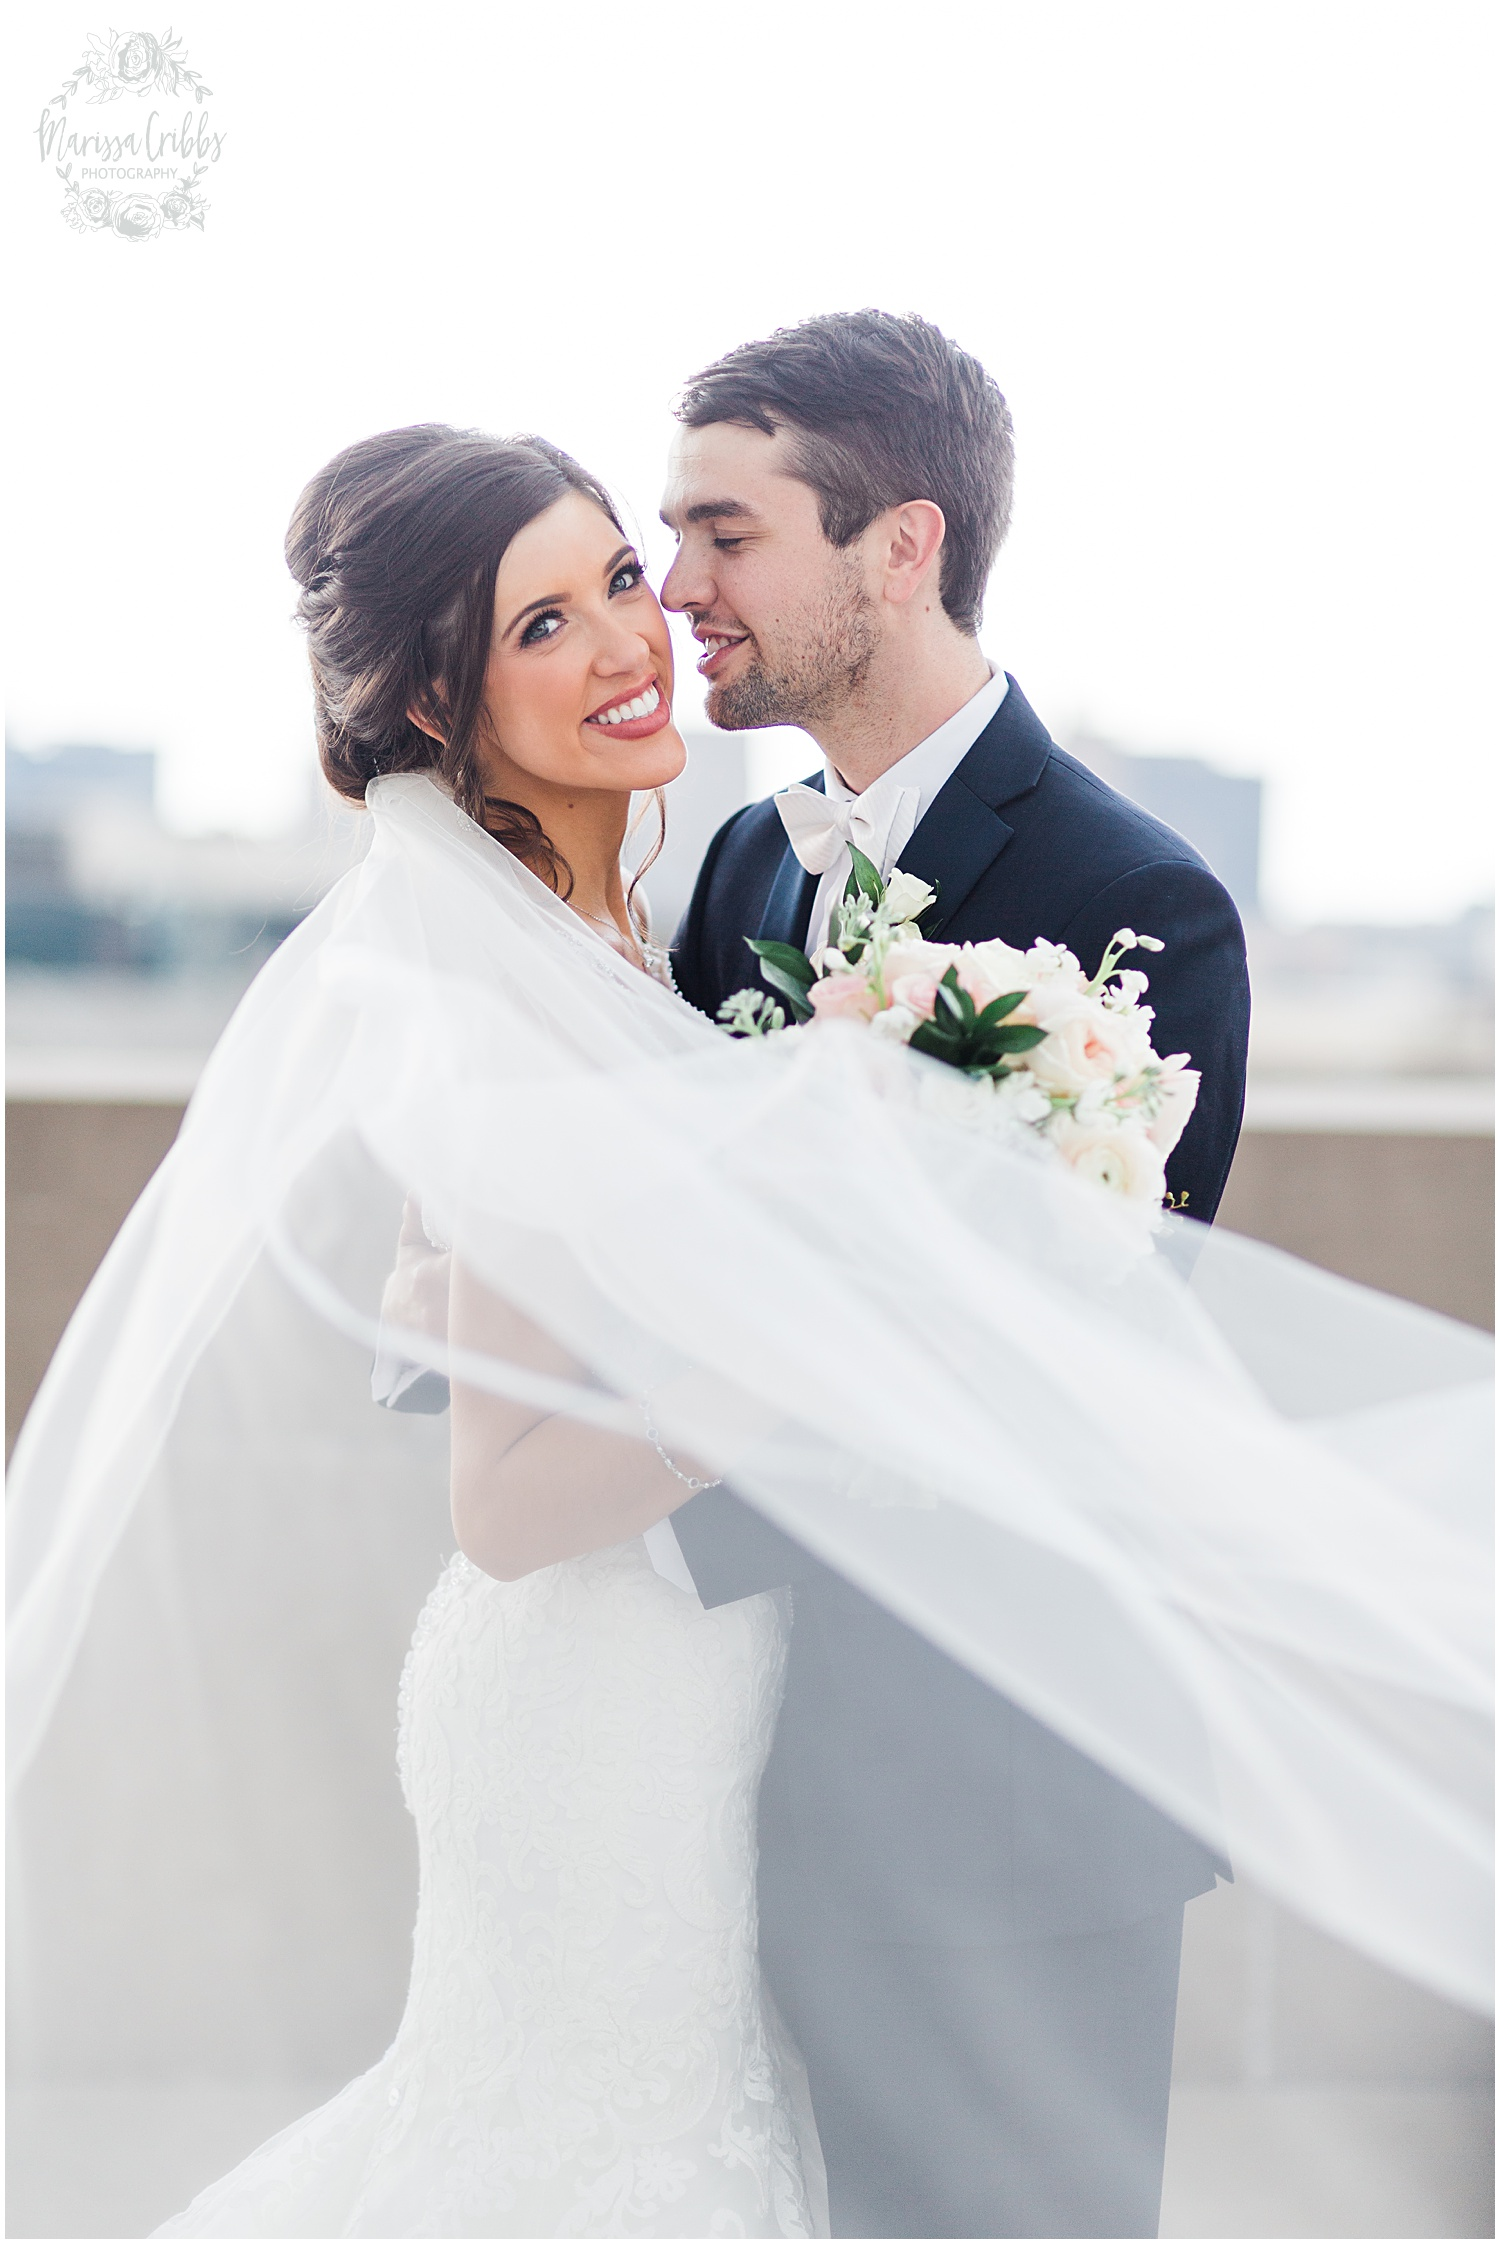 MEGAN & DEREK WEDDING BLOG | MARISSA CRIBBS PHOTOGRAPHY_8159.jpg